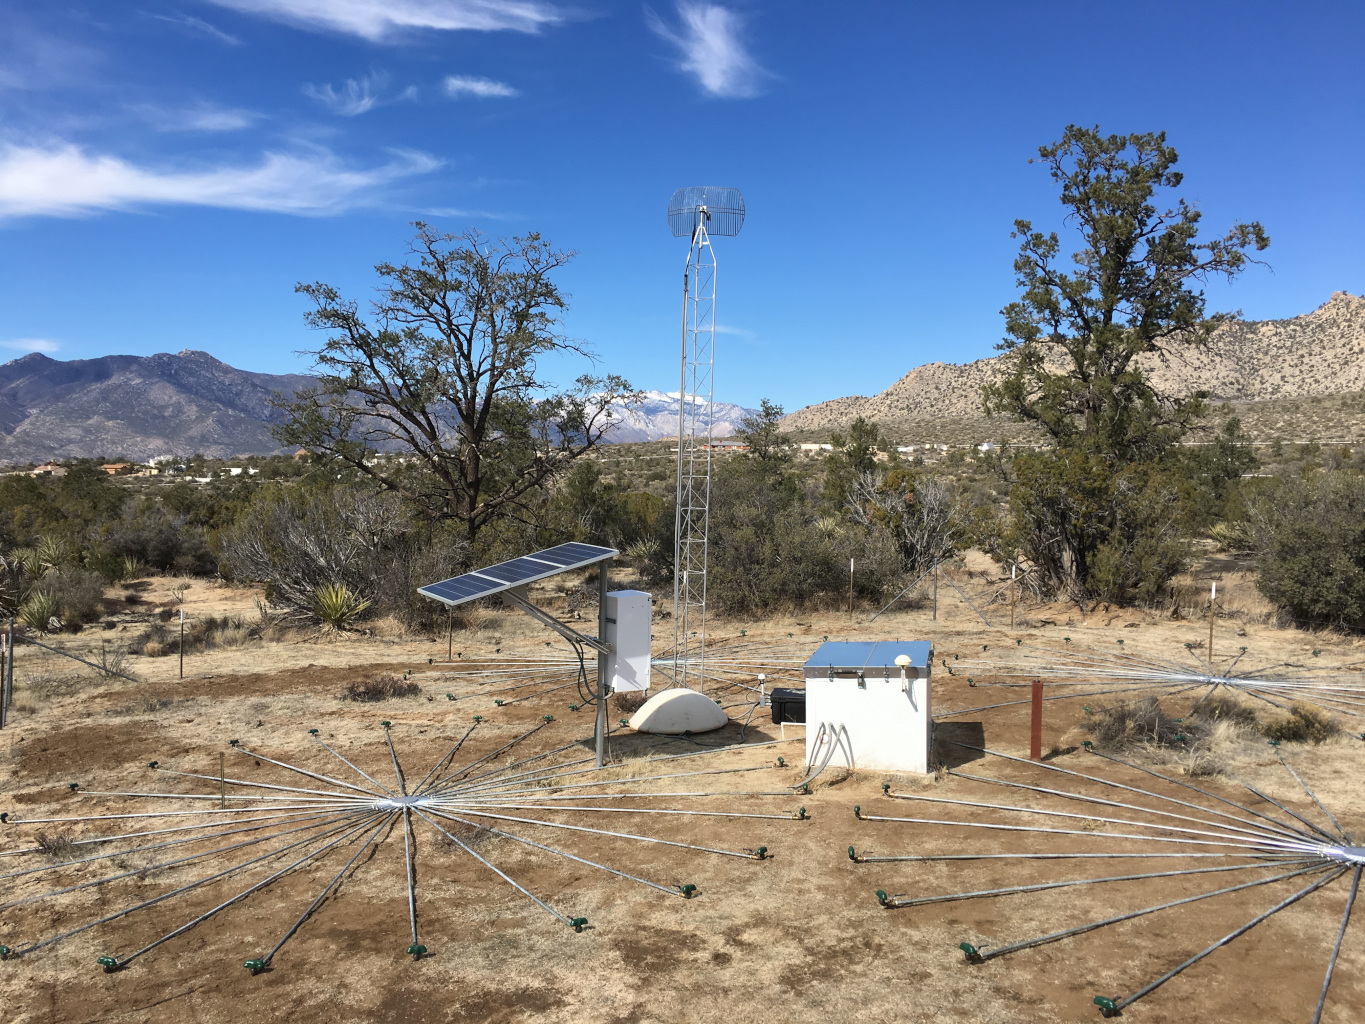 A box connected to array in bright sunshine with solar panel nearby. Tower is shown in background. Ground has dirt but no grass and looks like a desert.